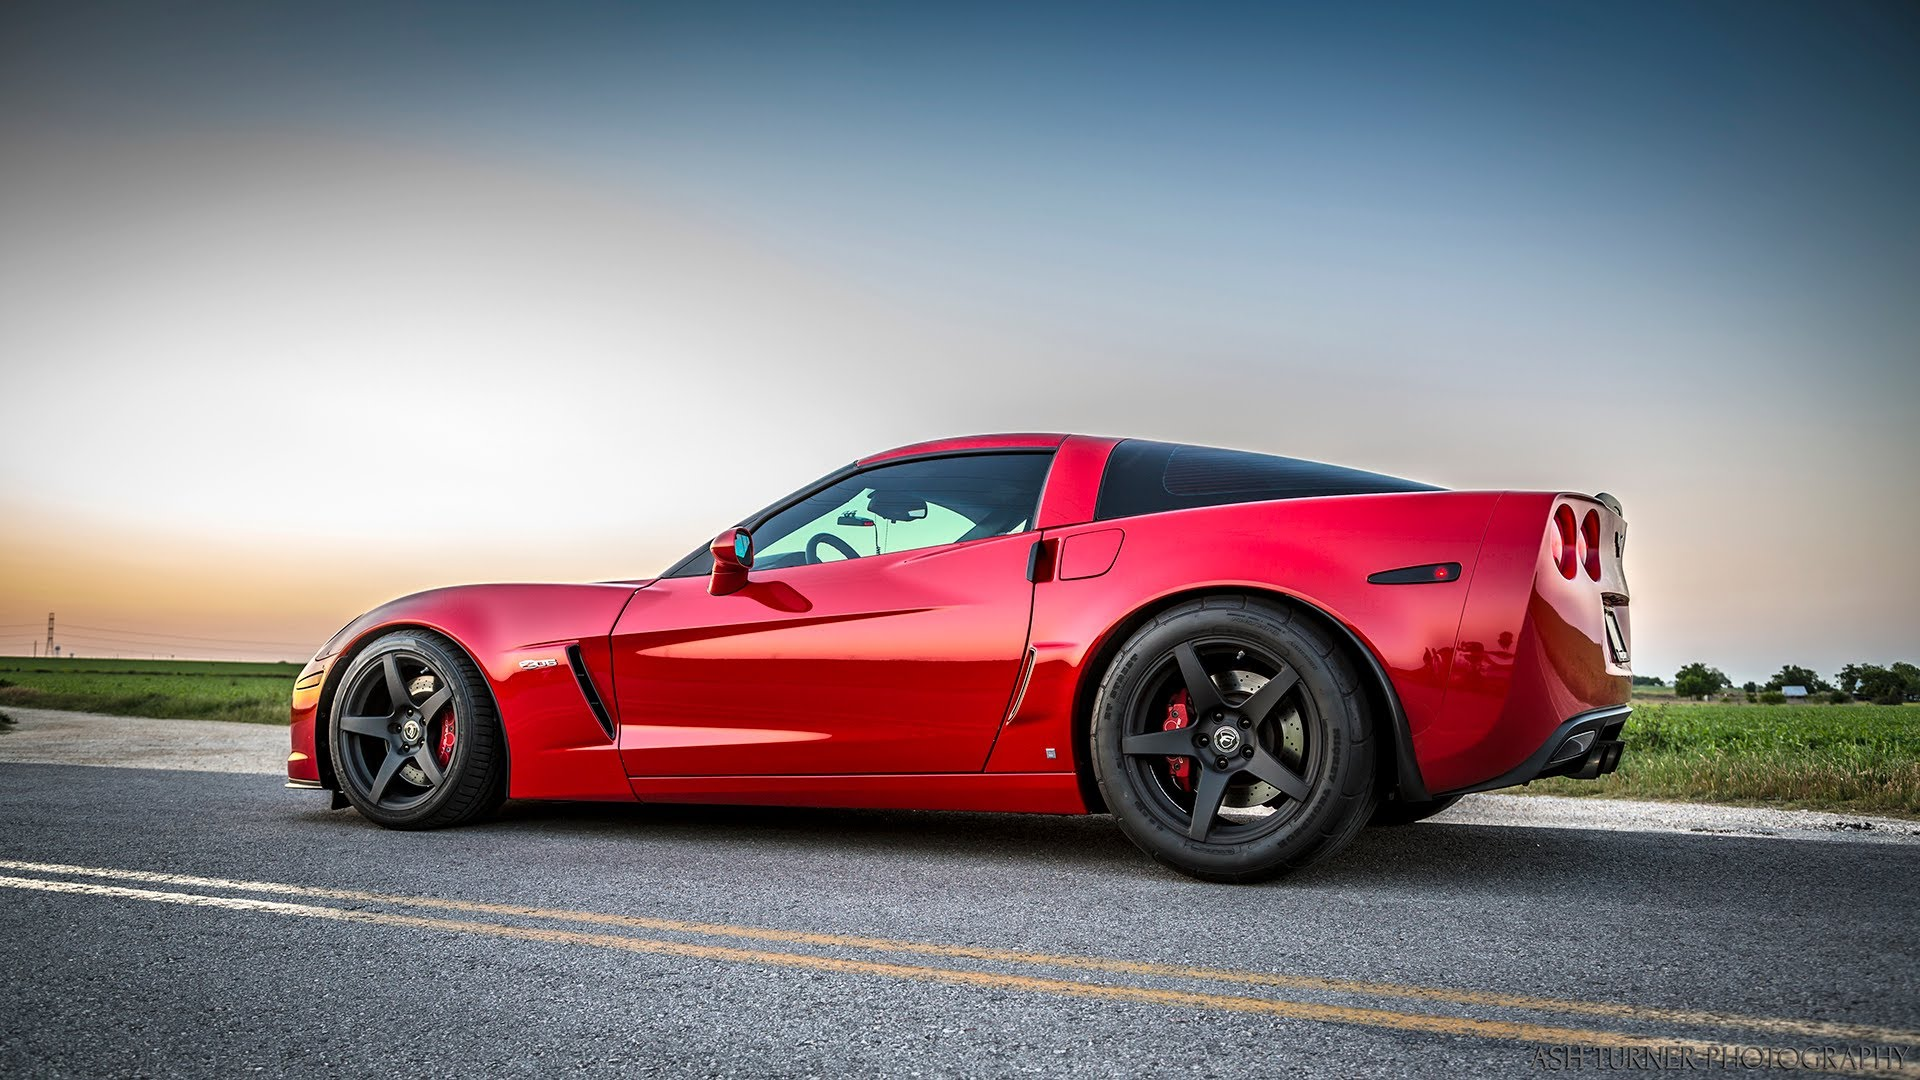 C6 Corvette Z06 Supercharged Stage 5R Dallas Performance 1000+hp